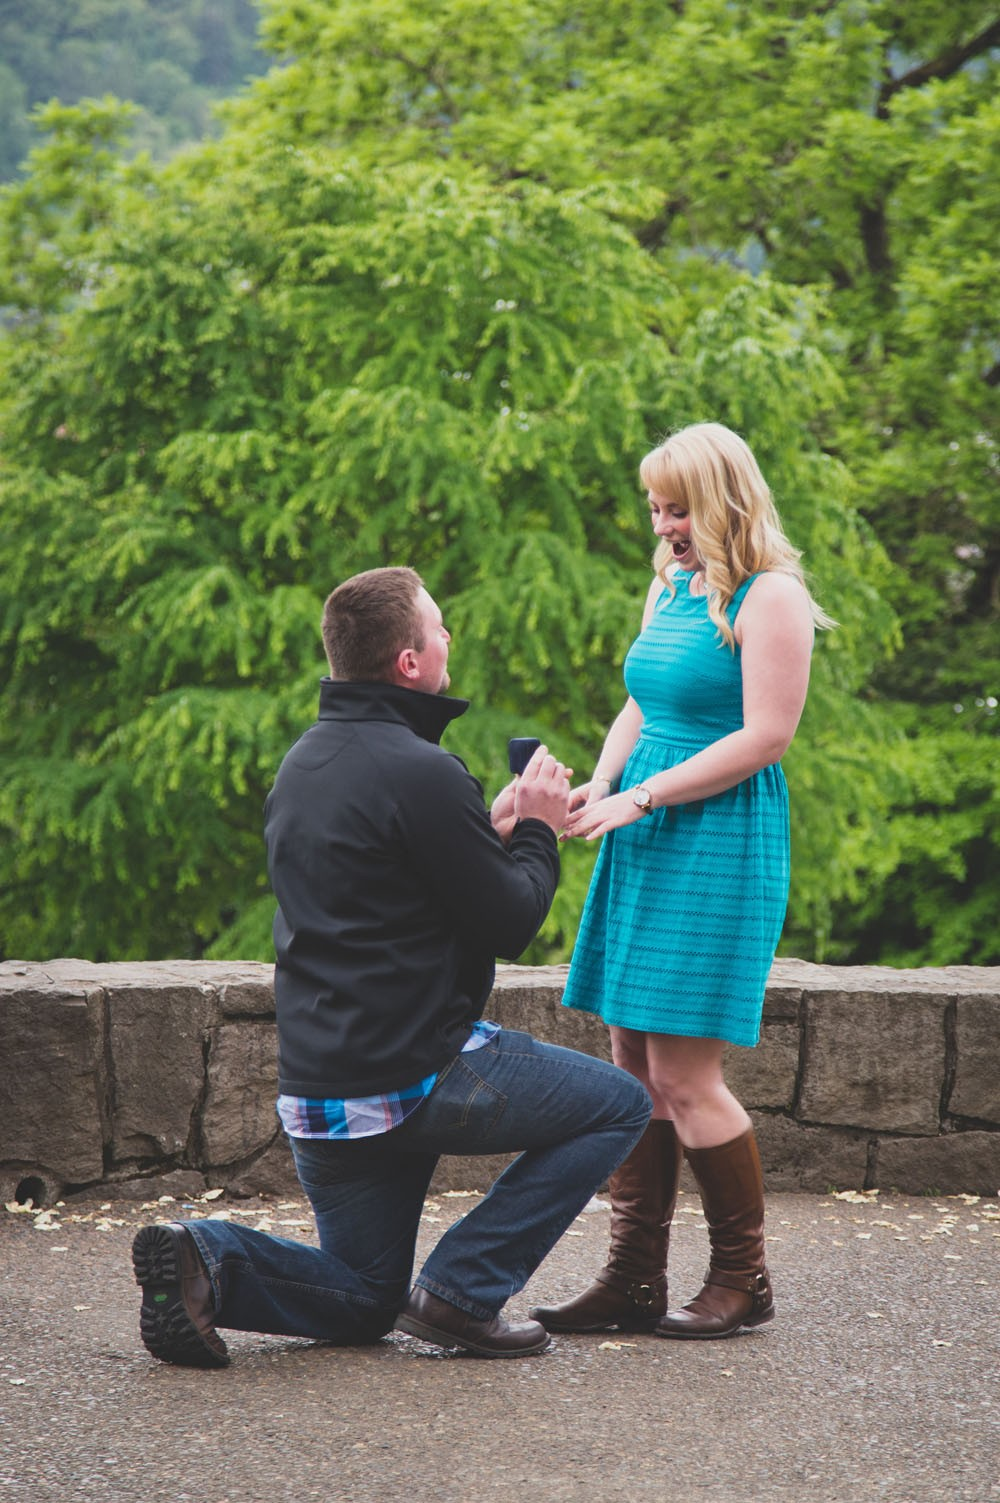 Rachael&Brandon Proposal Cat Dossett I Take Photos-5